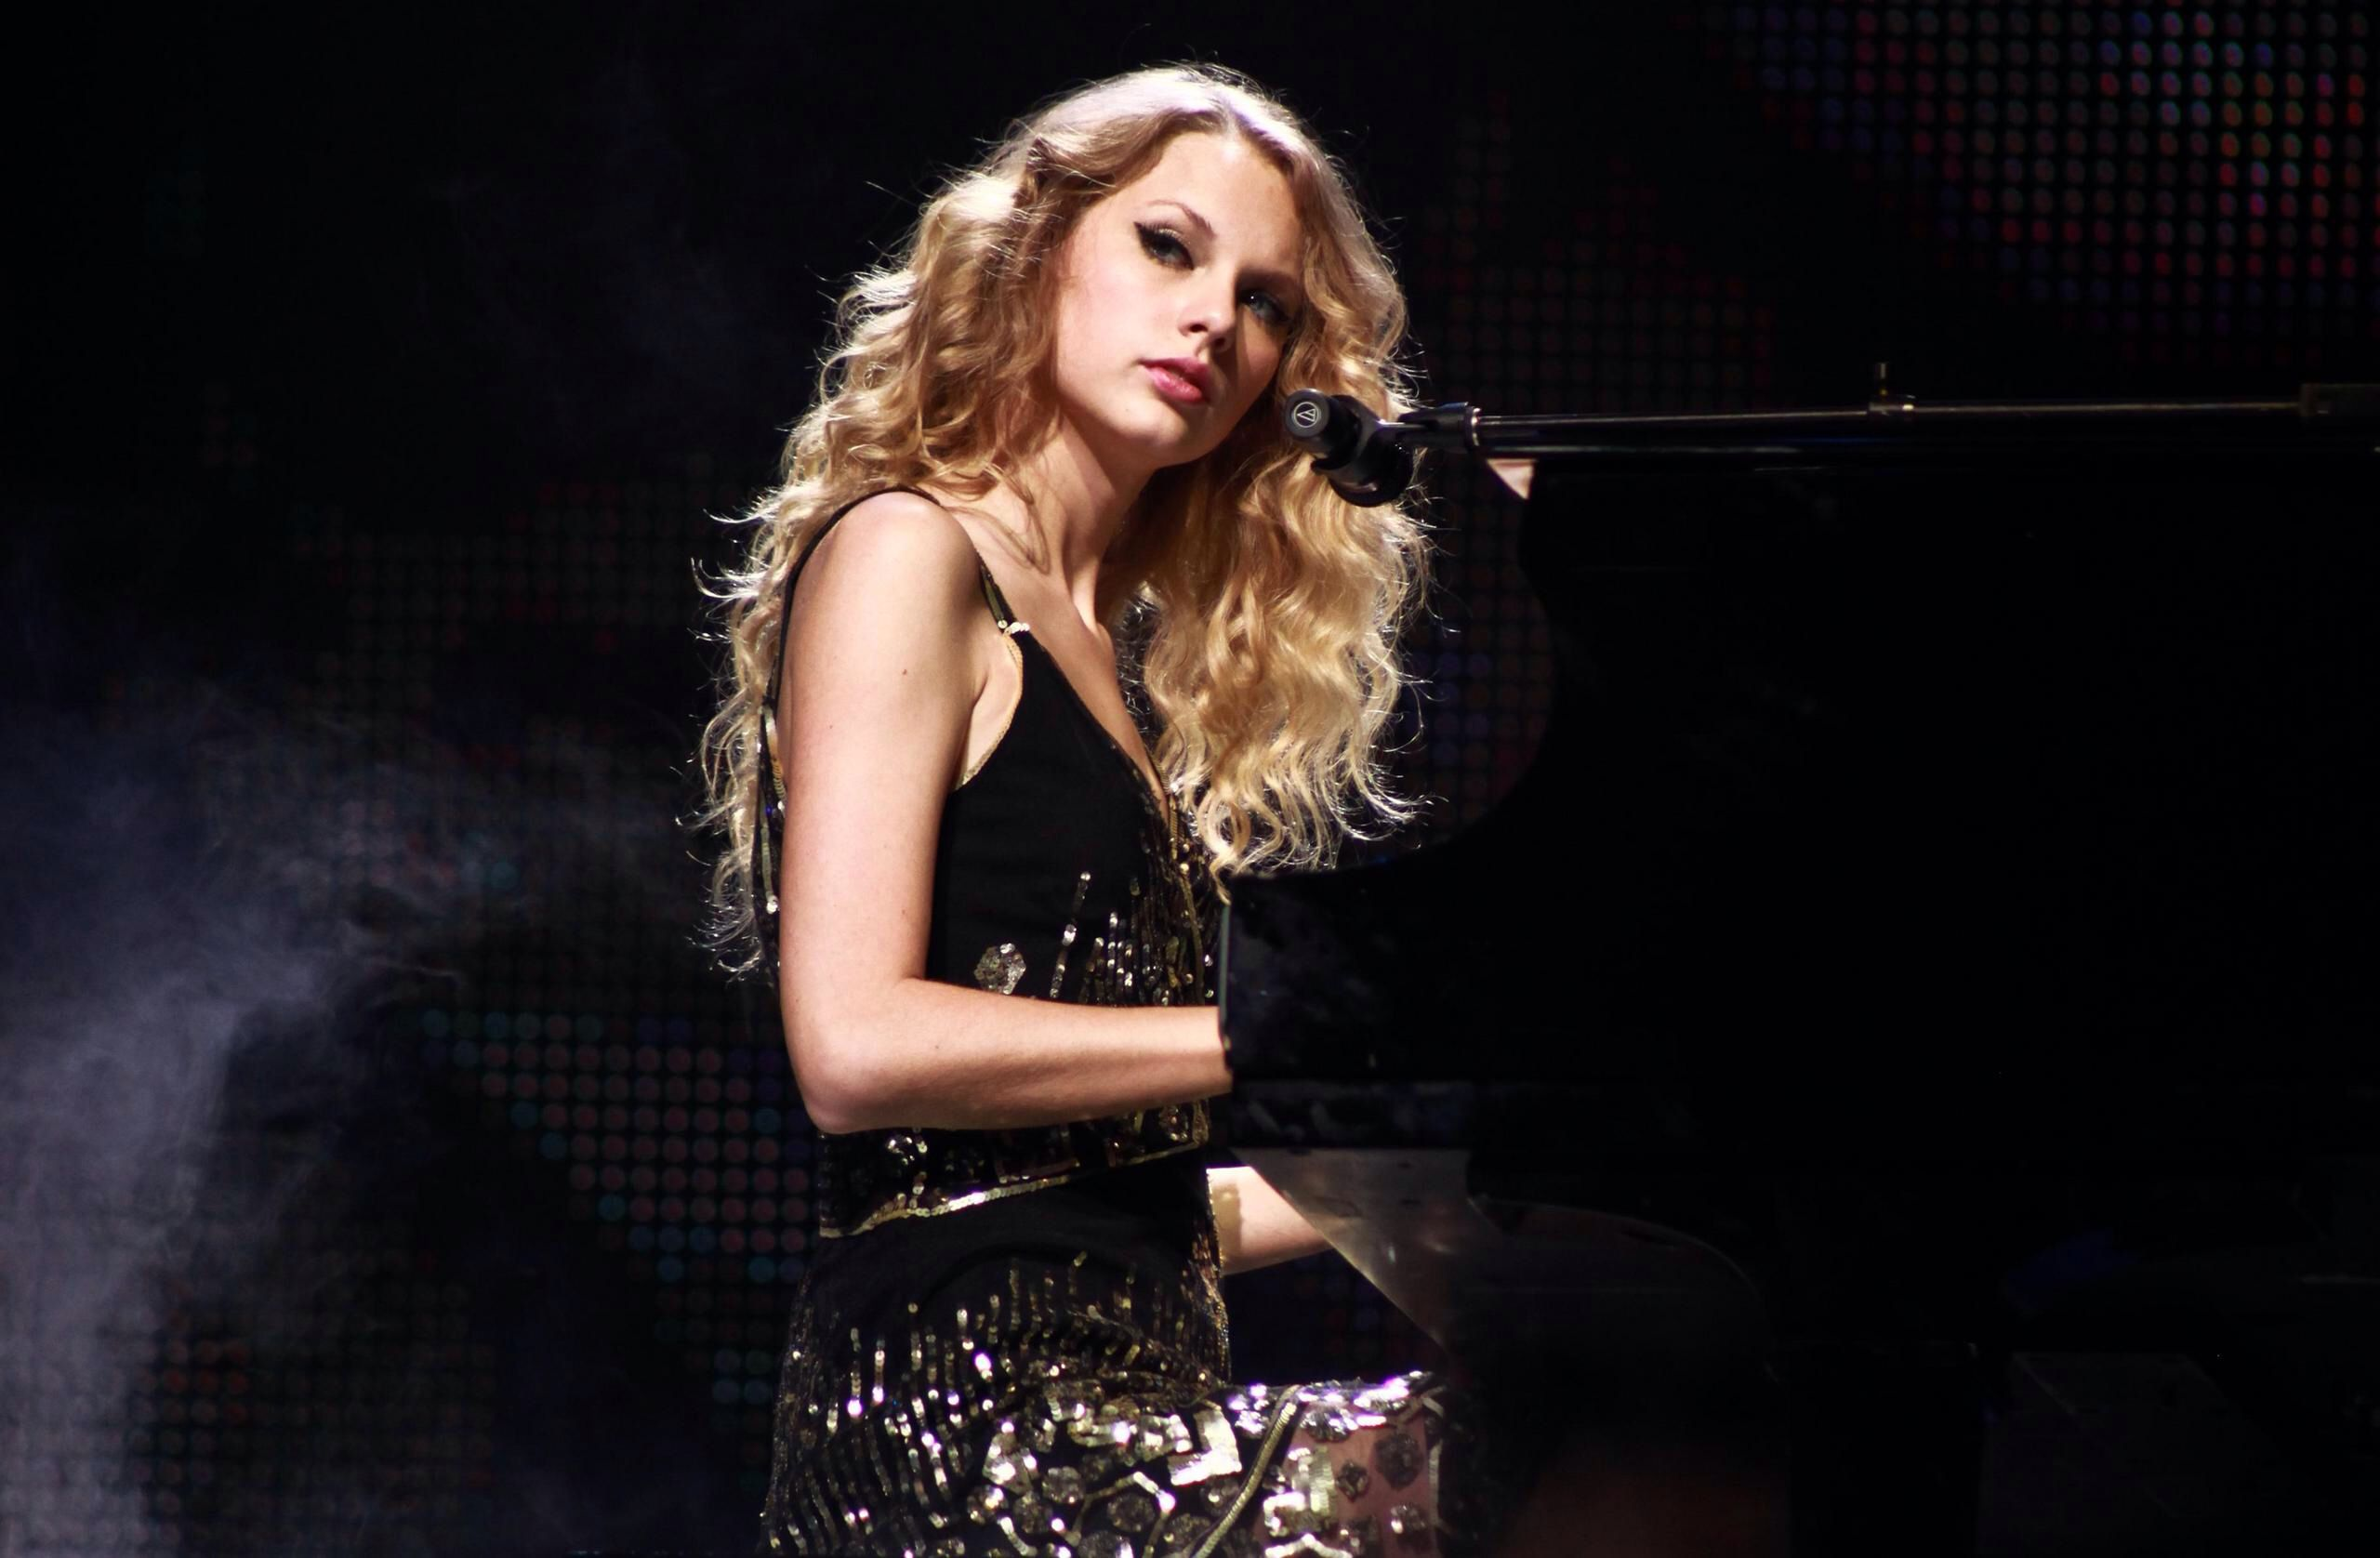 Taylor Swift Fearless Re-Recorded for her lovely fans! Release Date